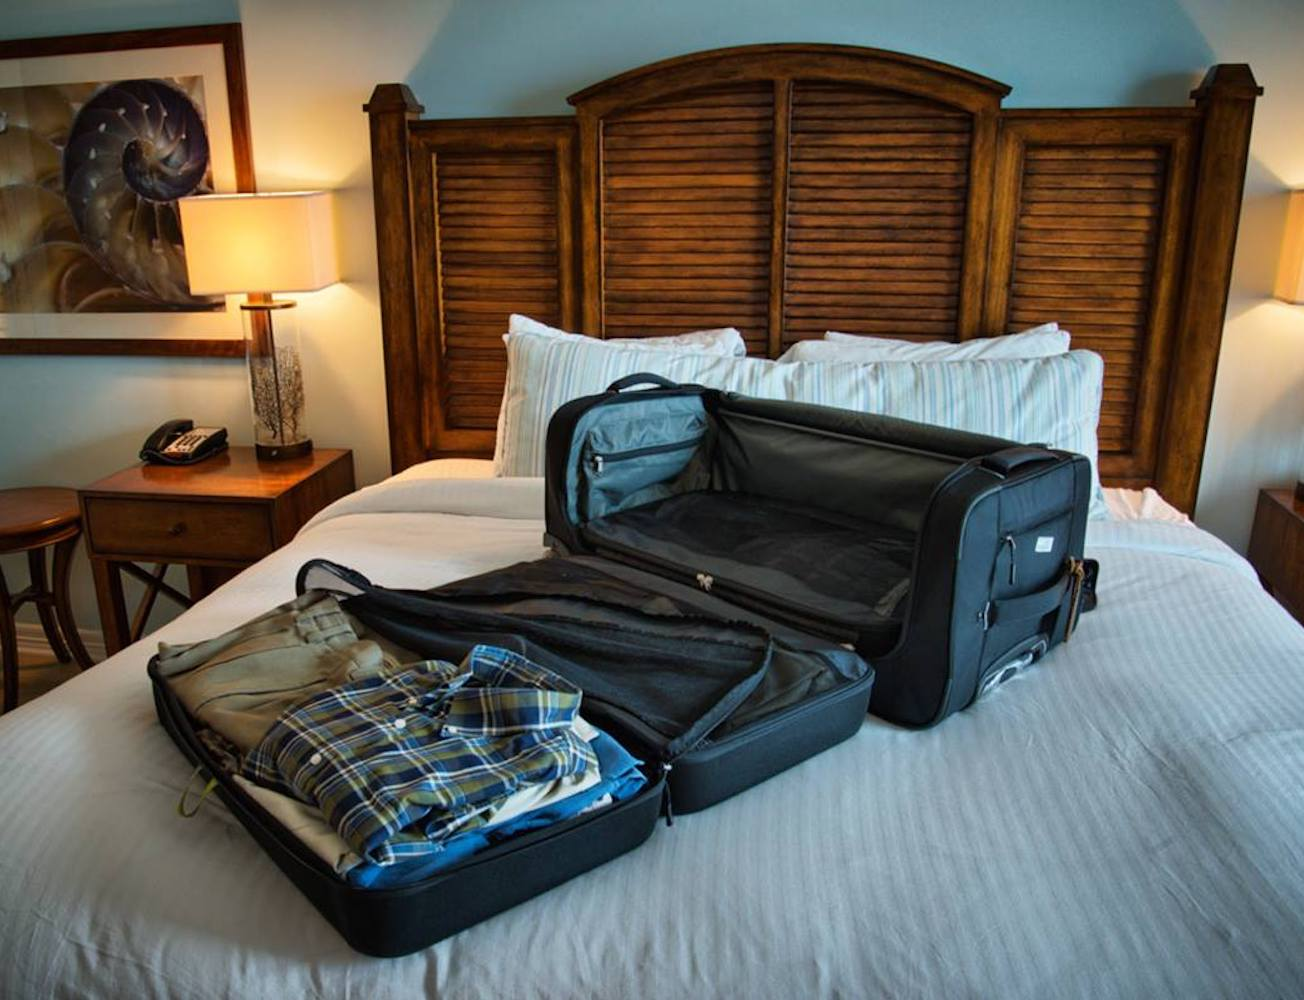 Oregami FIT Luggage Organization System makes packing easy